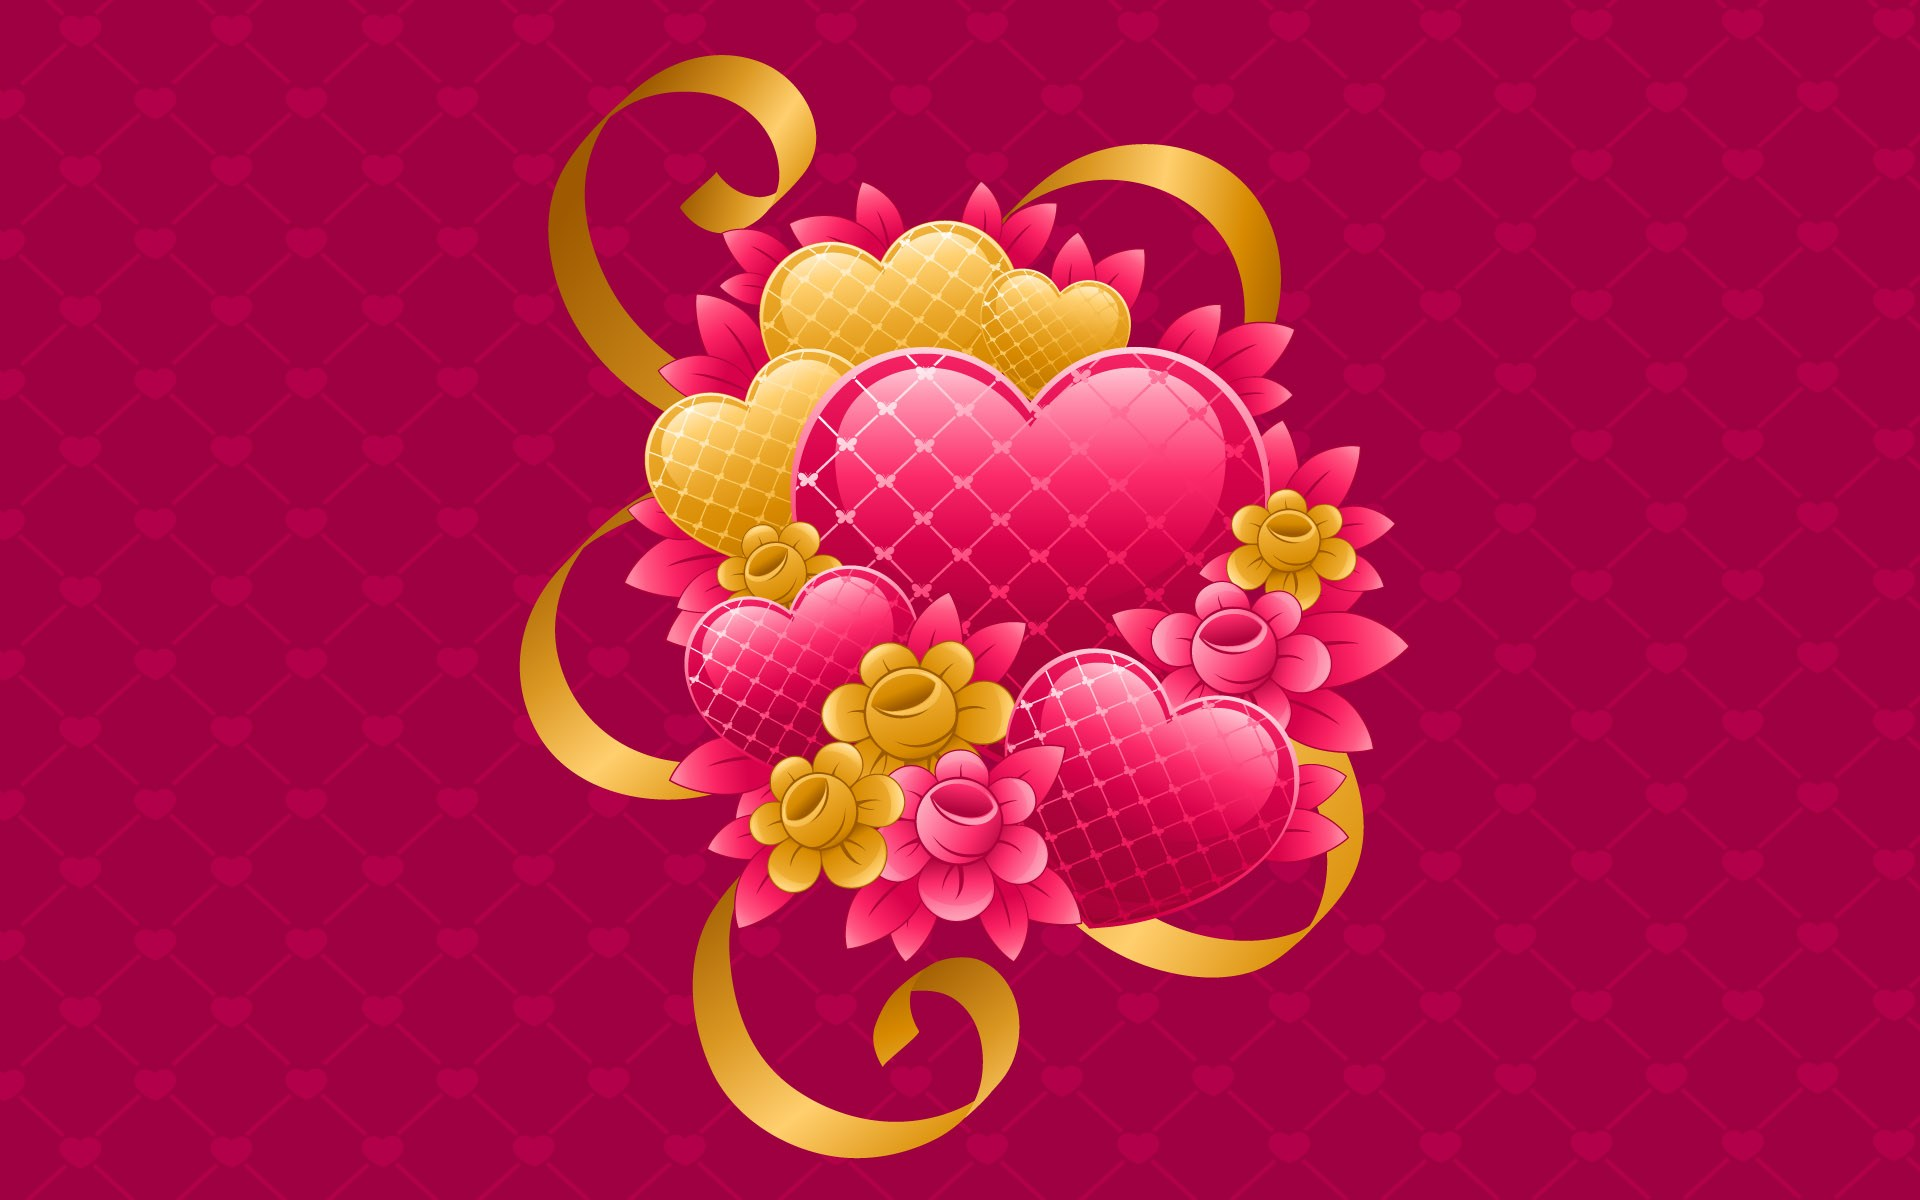 Hearth Love Vector Wallpaper 022